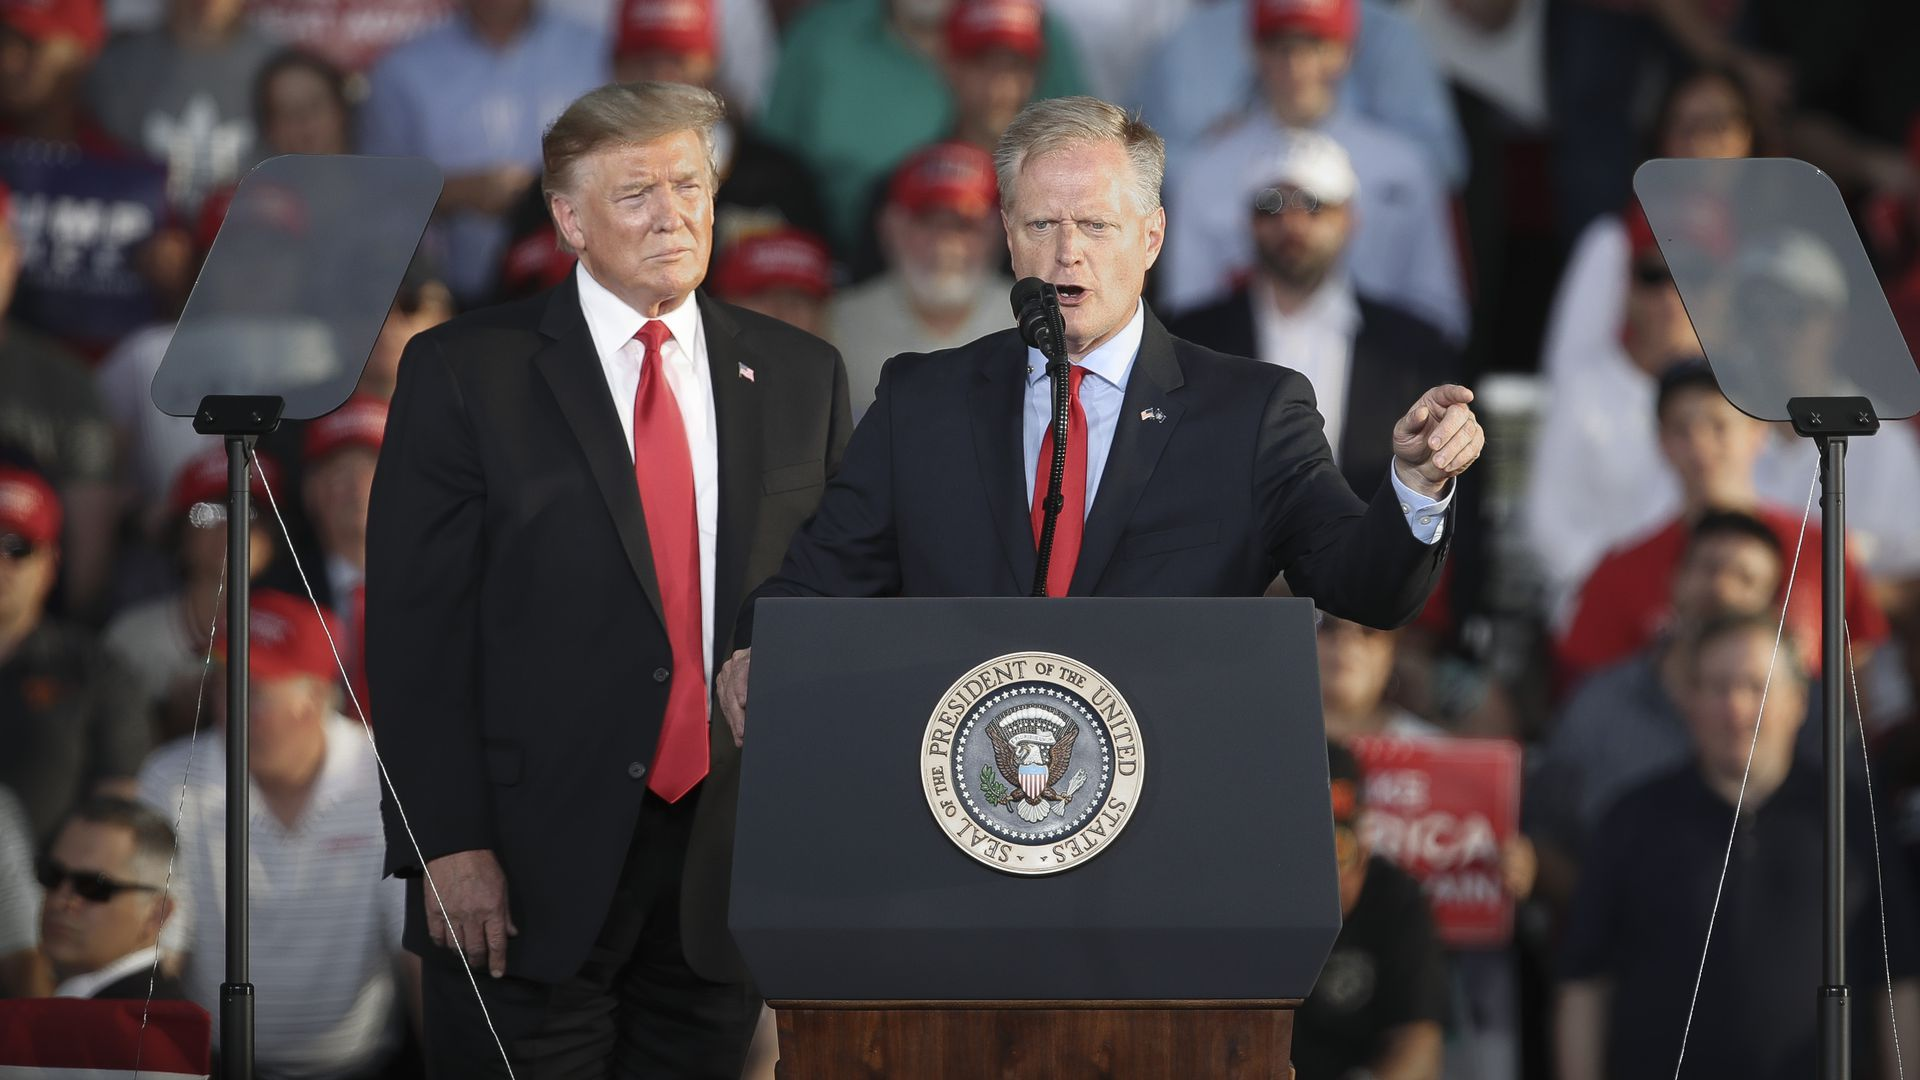 President Trump and Fred Keller, Republican candidate for Congress in Pennsylvania's 12th Congressional district.